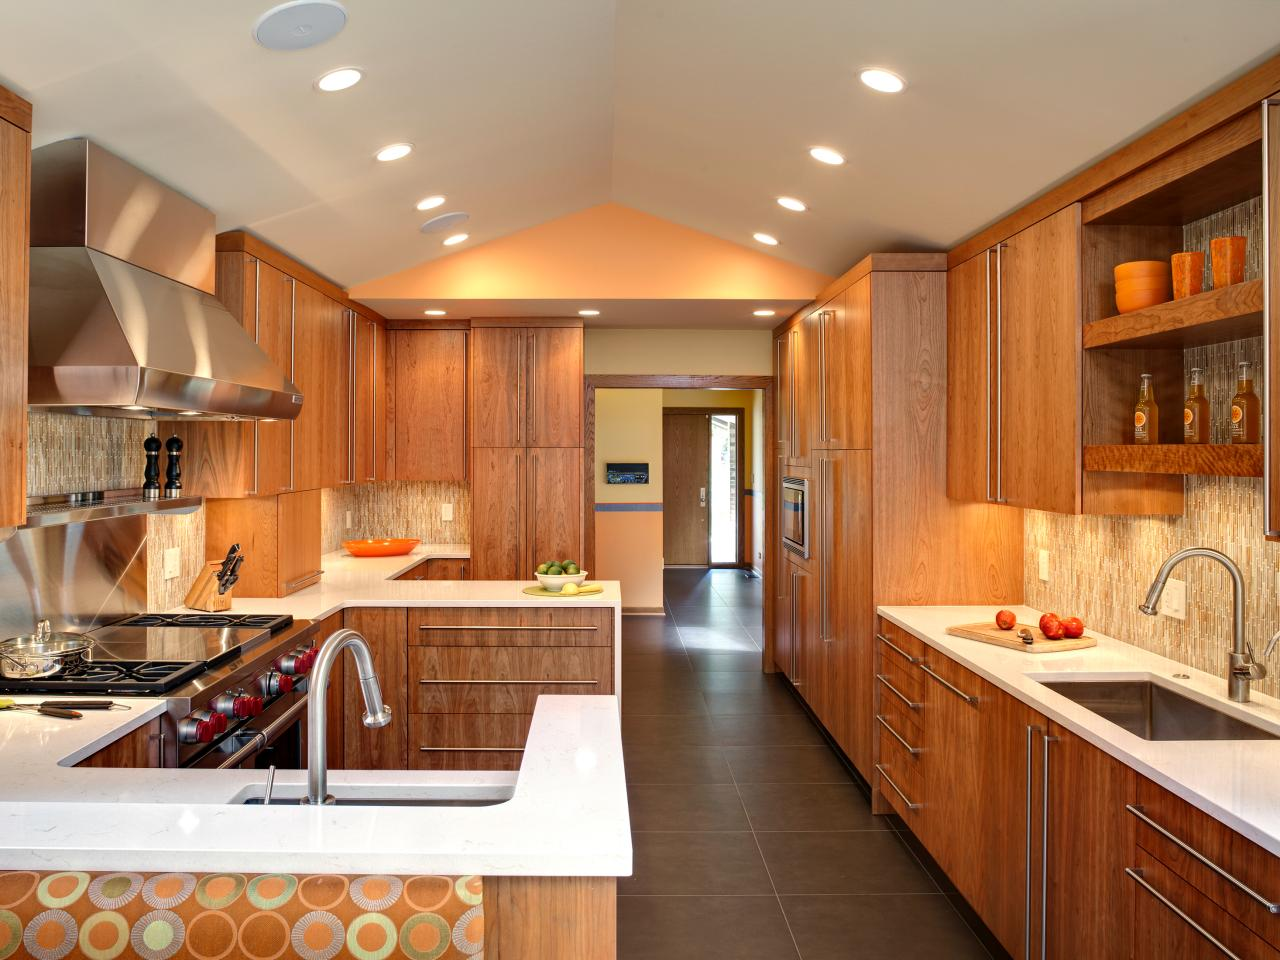 Modern Kitchen Design Pictures Ideas Tips From Hgtv Kitchen Ideas Design With Cabinets